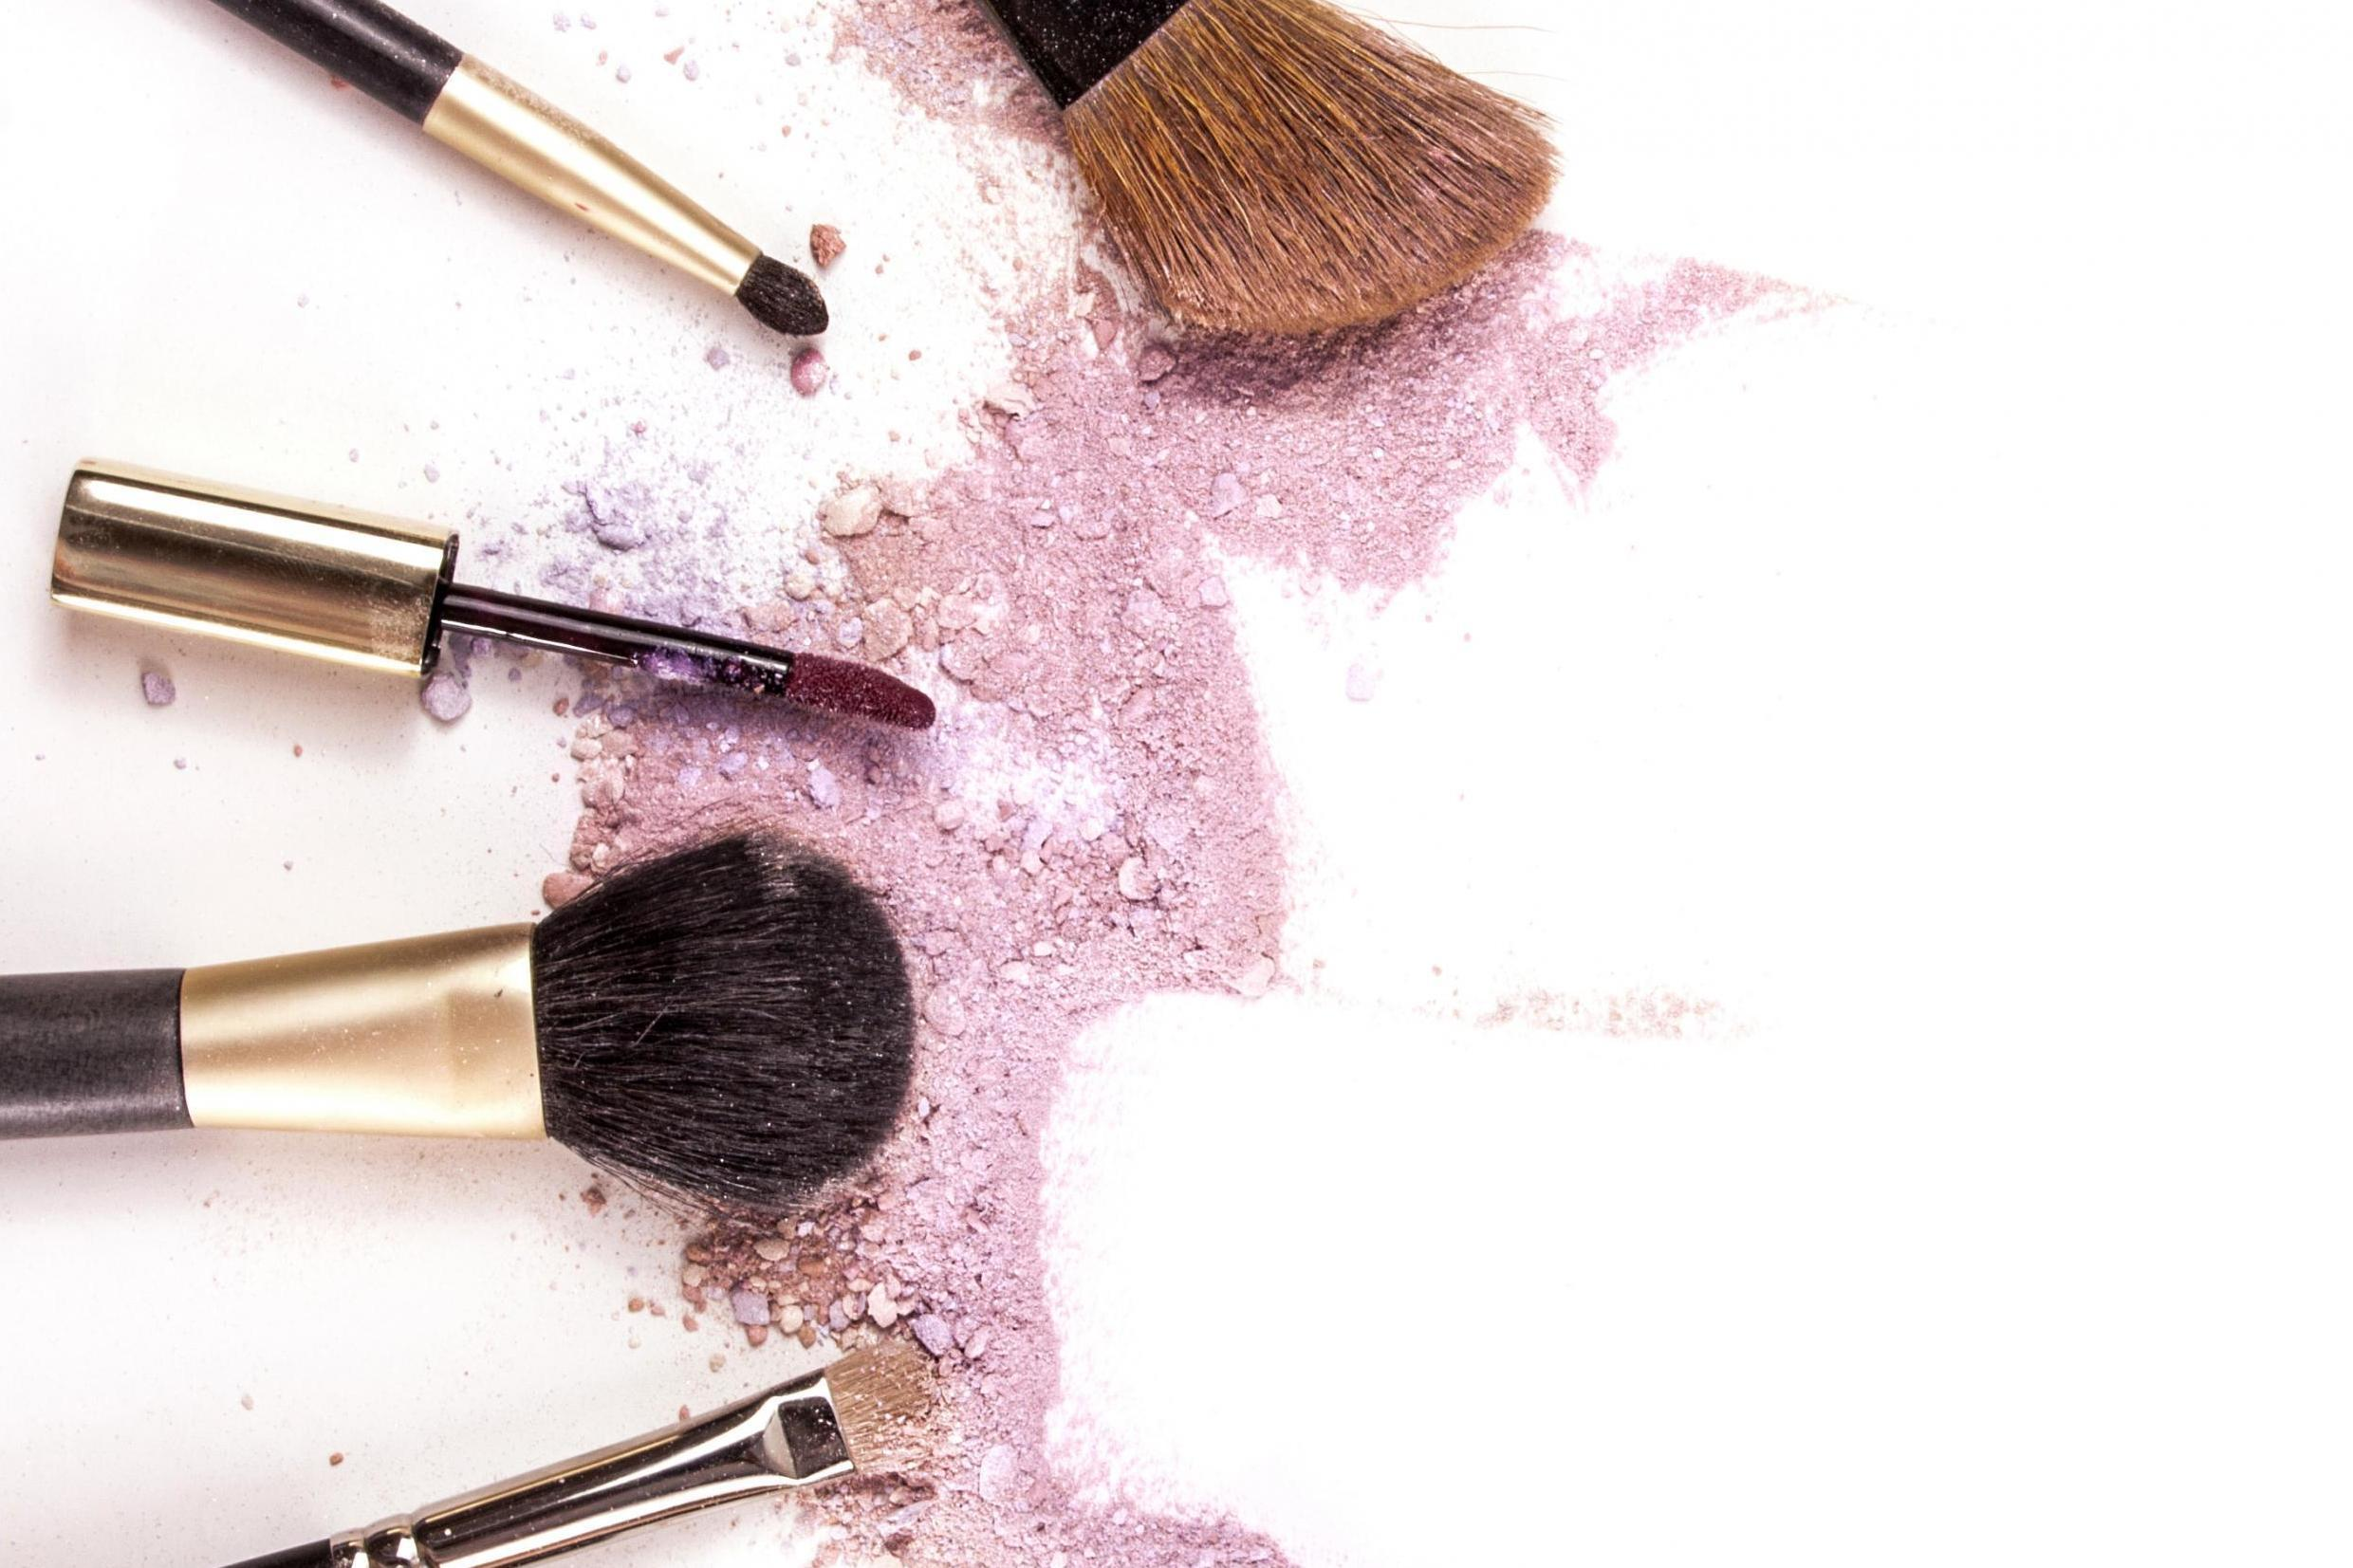 Top beauty trends for 2018 revealed by Pinterest | The Independentindependent_brand_ident_LOGOUntitled